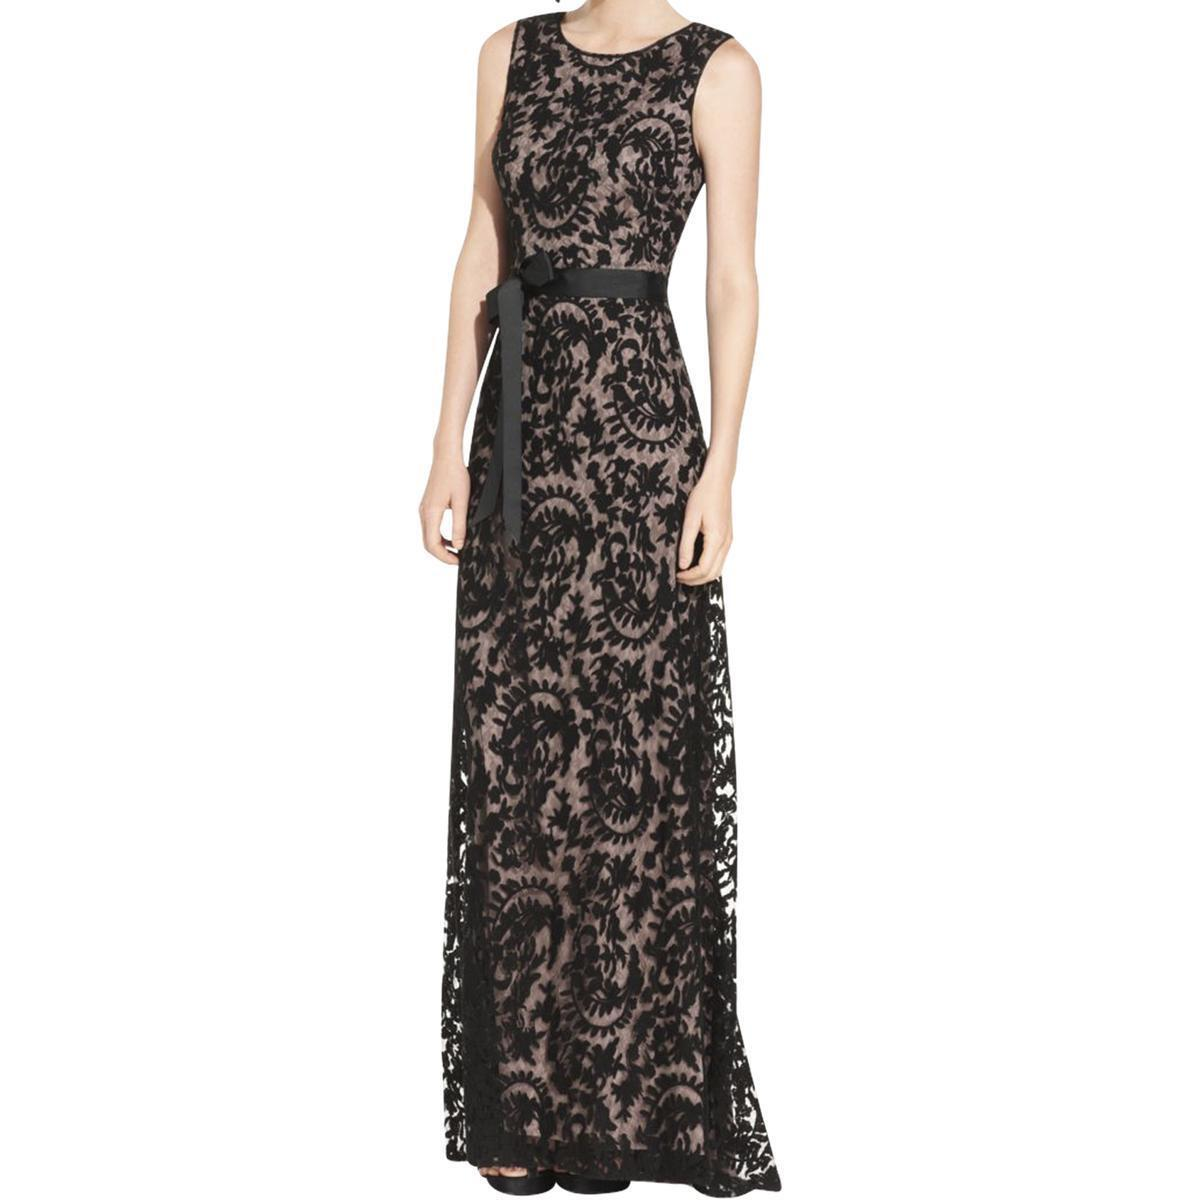 Adrianna Papell Womens Sz 12 Navy Lace Embroidered Evening Dress ...